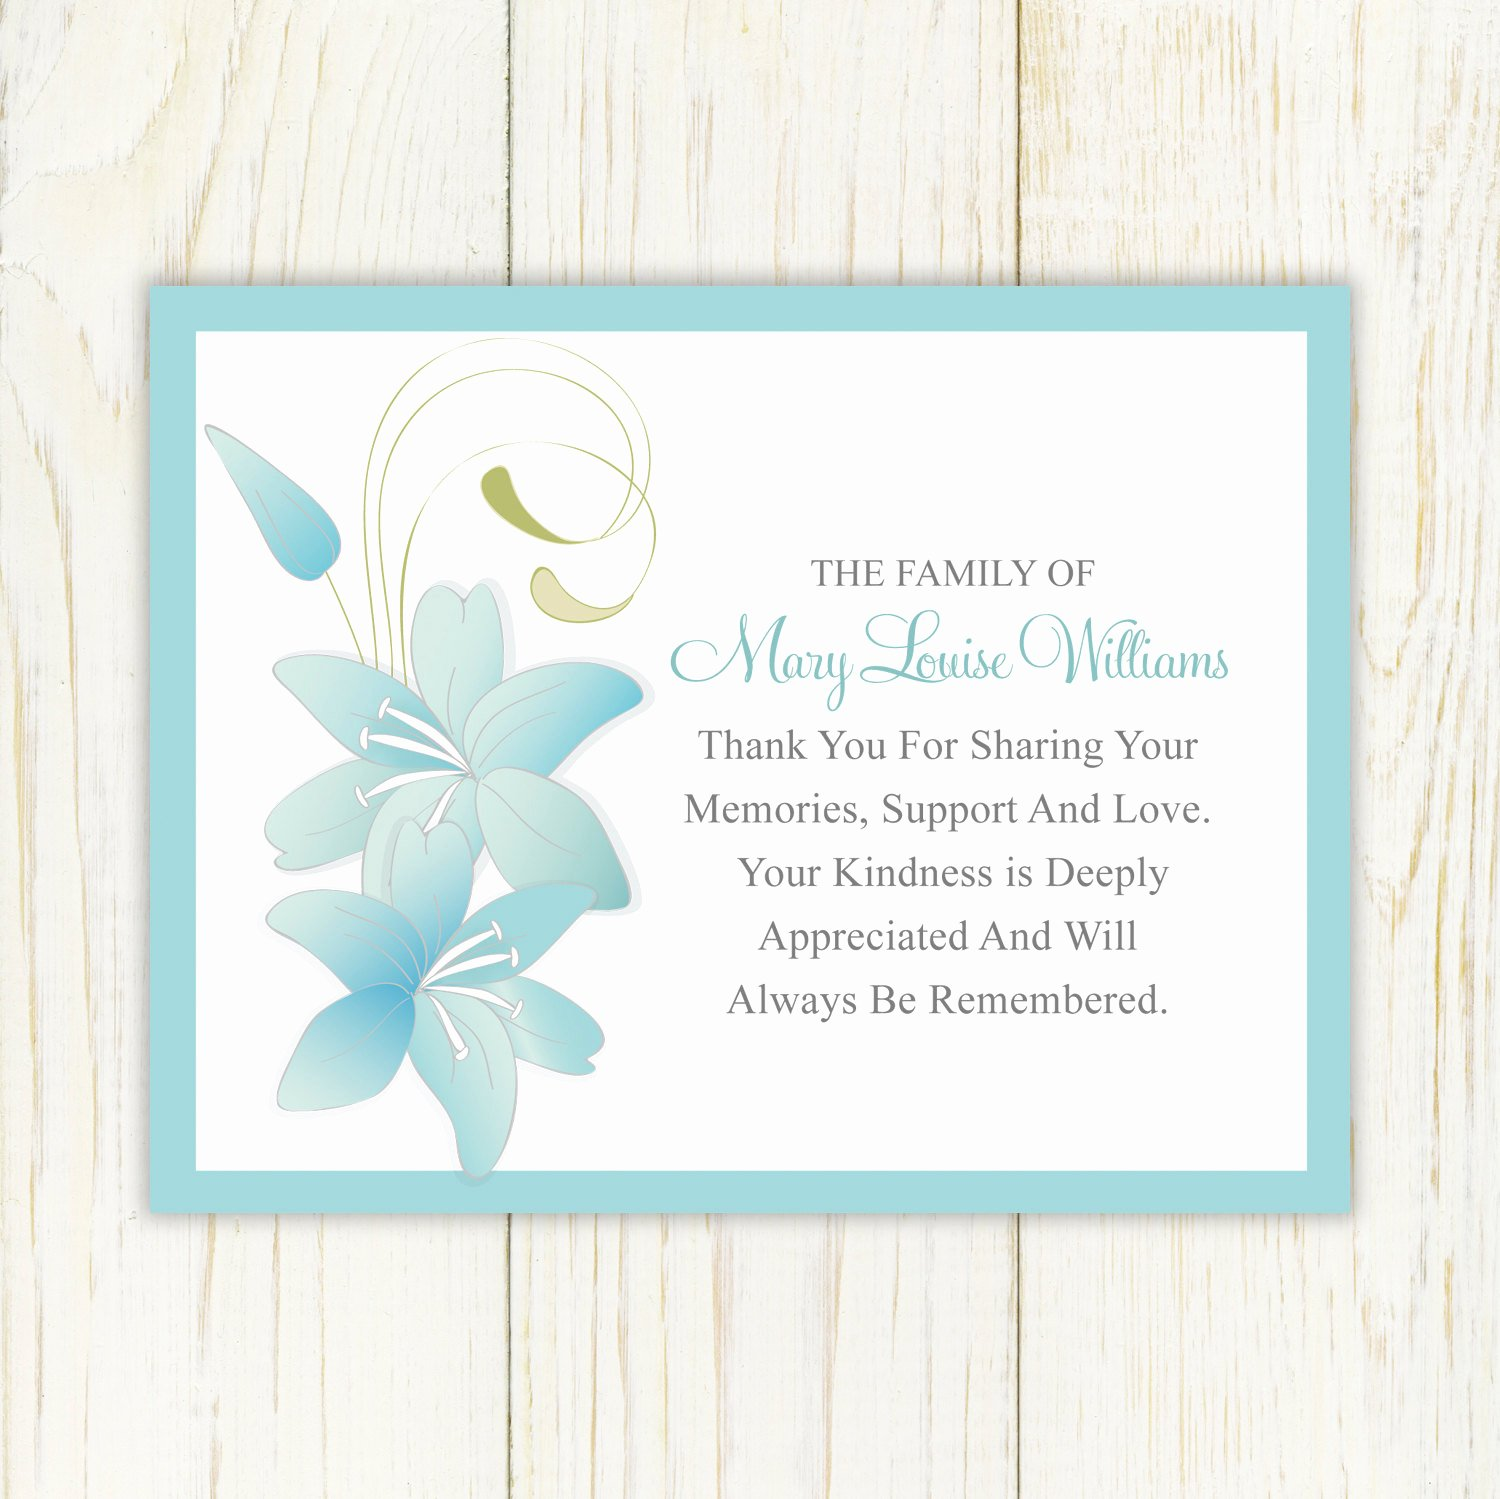 Thank You Card for Money Lovely Sympathy Thank You Card Printable by Eloycedesigns On Etsy